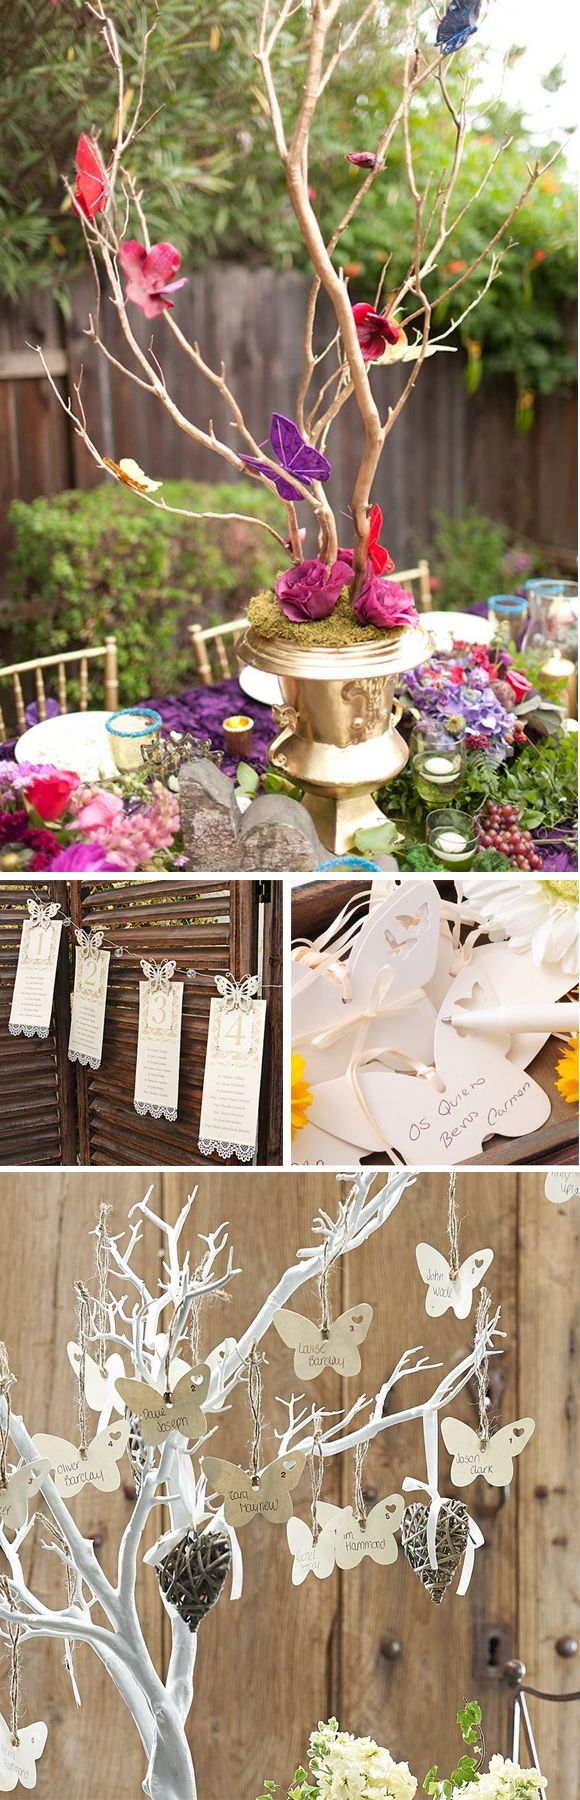 656 best images about wedding decor ideas on pinterest for Decoracion para casamiento